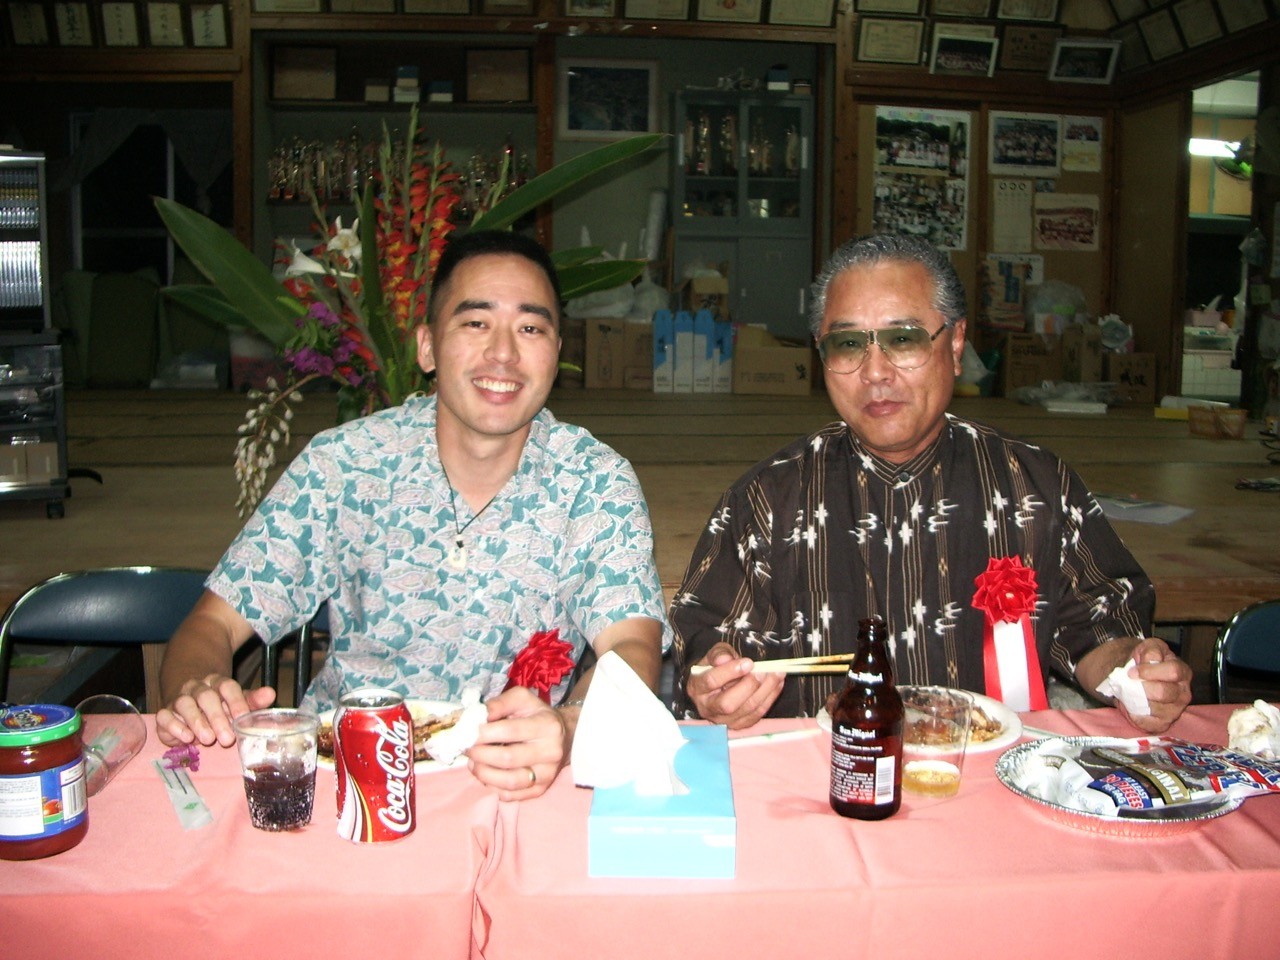 In 2005, the Nagahama Kariyushi Kai had a party to recognize Toma-san and myself for our promotions — Toma-san to Lieutenant in the Okinawa Police Force, and myself to Major in the Air Force Reserves.